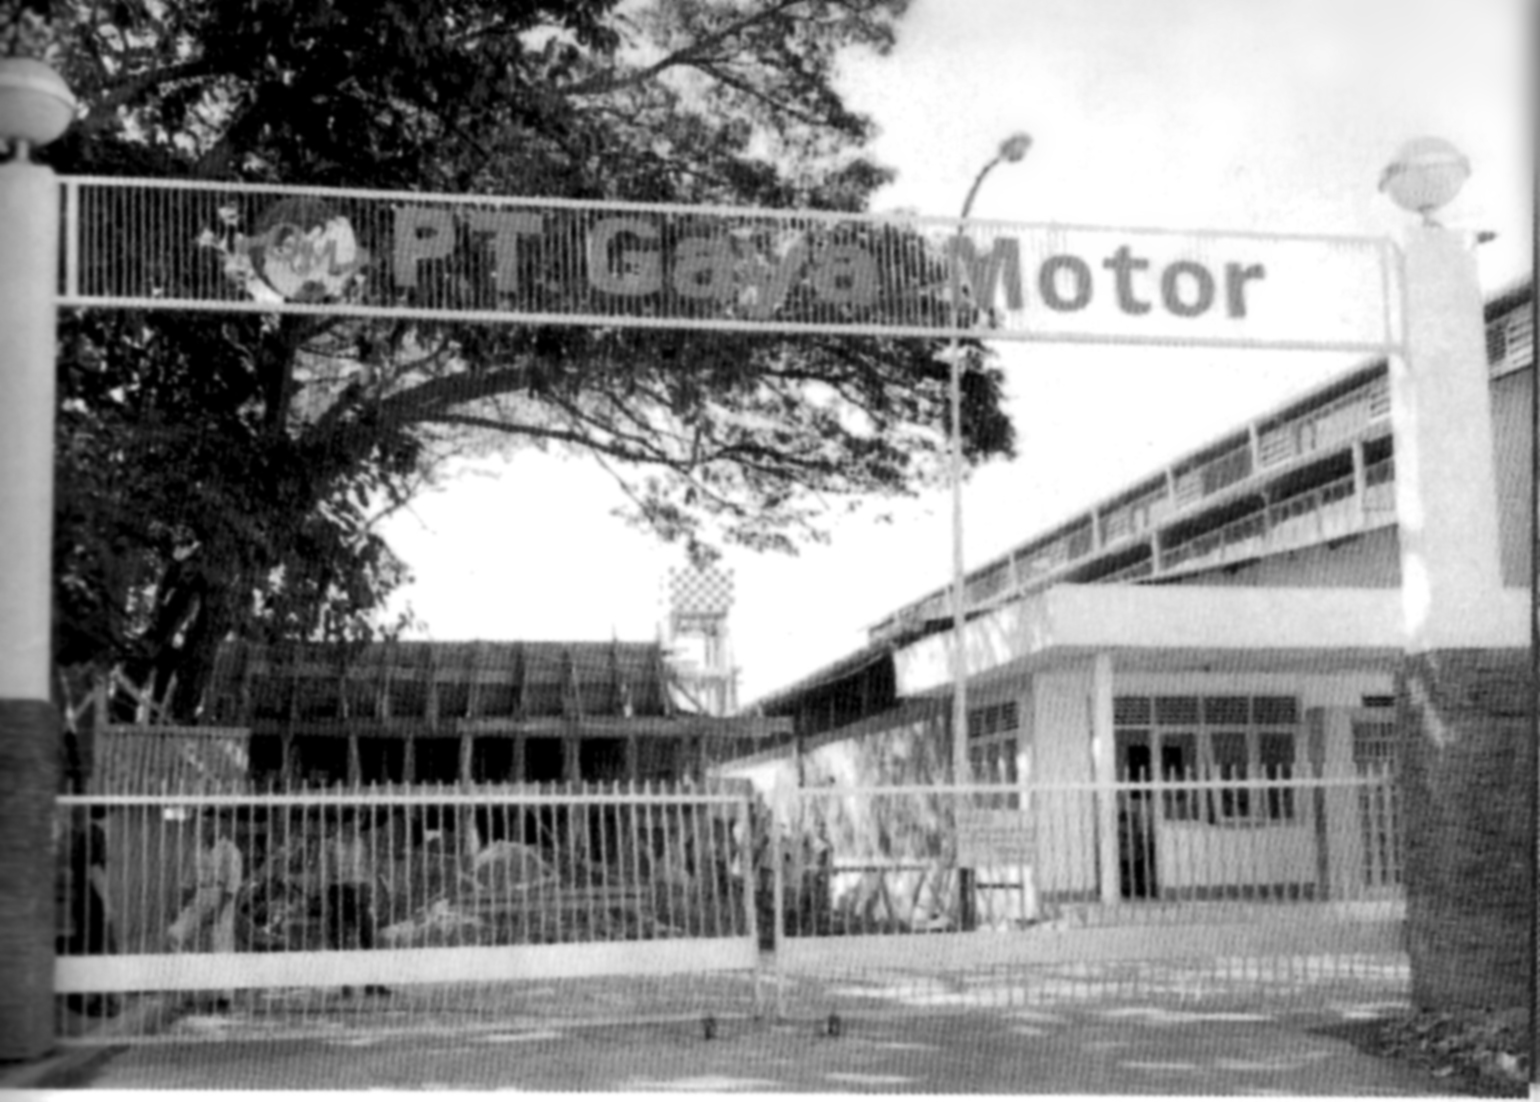 The Front gate of PT Gaya Motor Assembly Plant